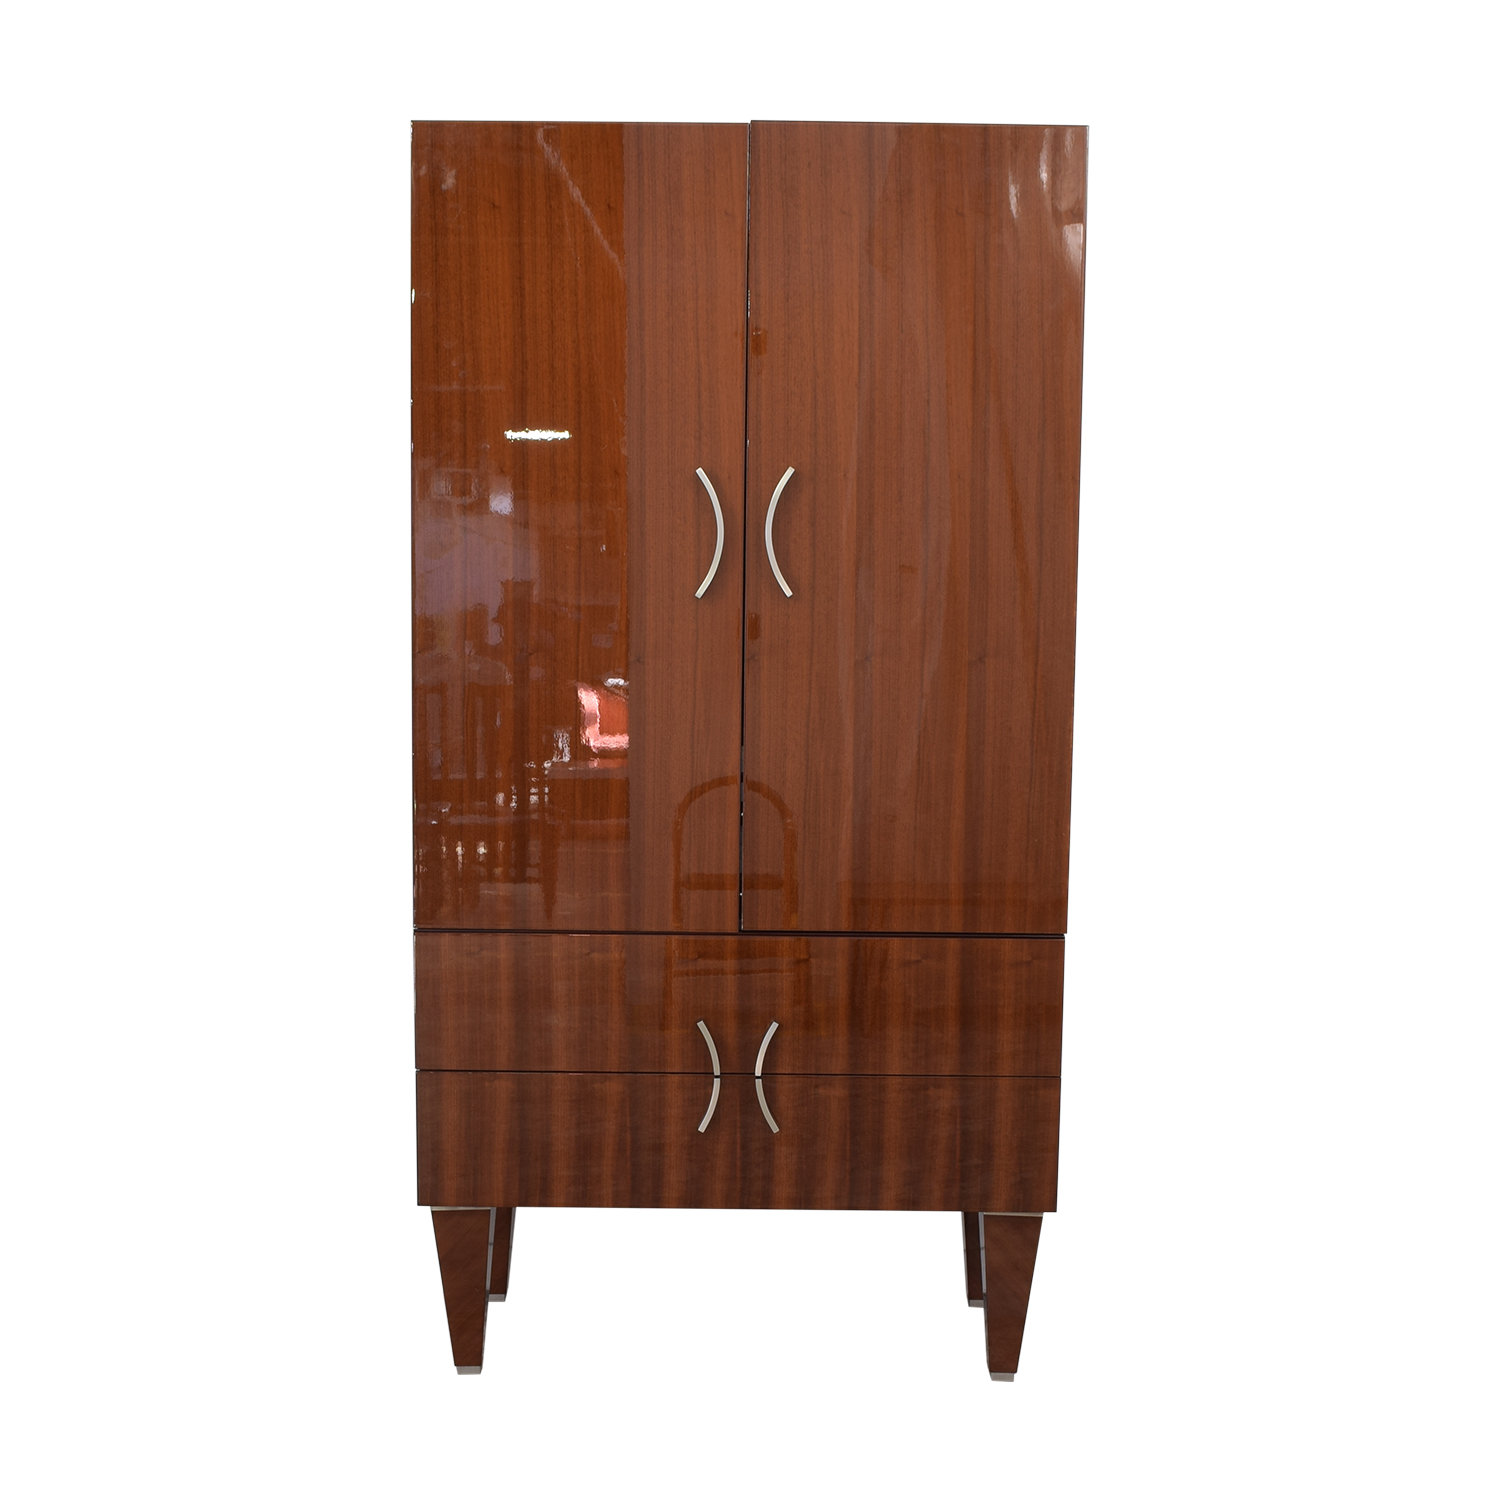 Excelsior Designs Excelsior Designs Dark Brown Wood Armoire for sale